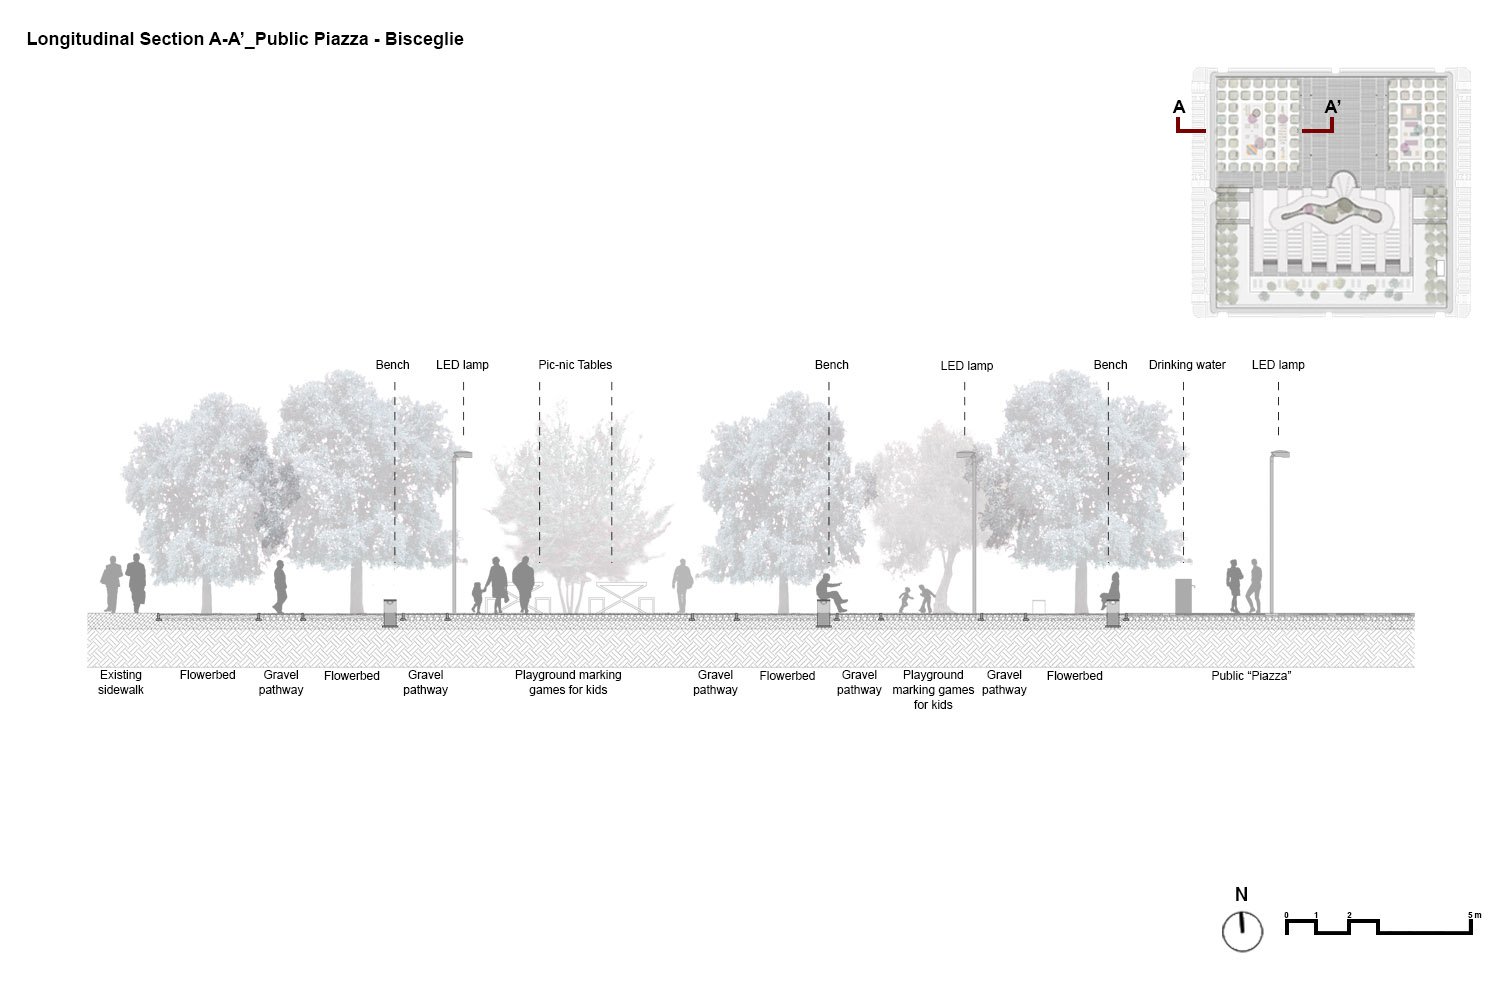 Cross section A-A' of the piazza with the arrangement specifications PERALTA - design & consulting}